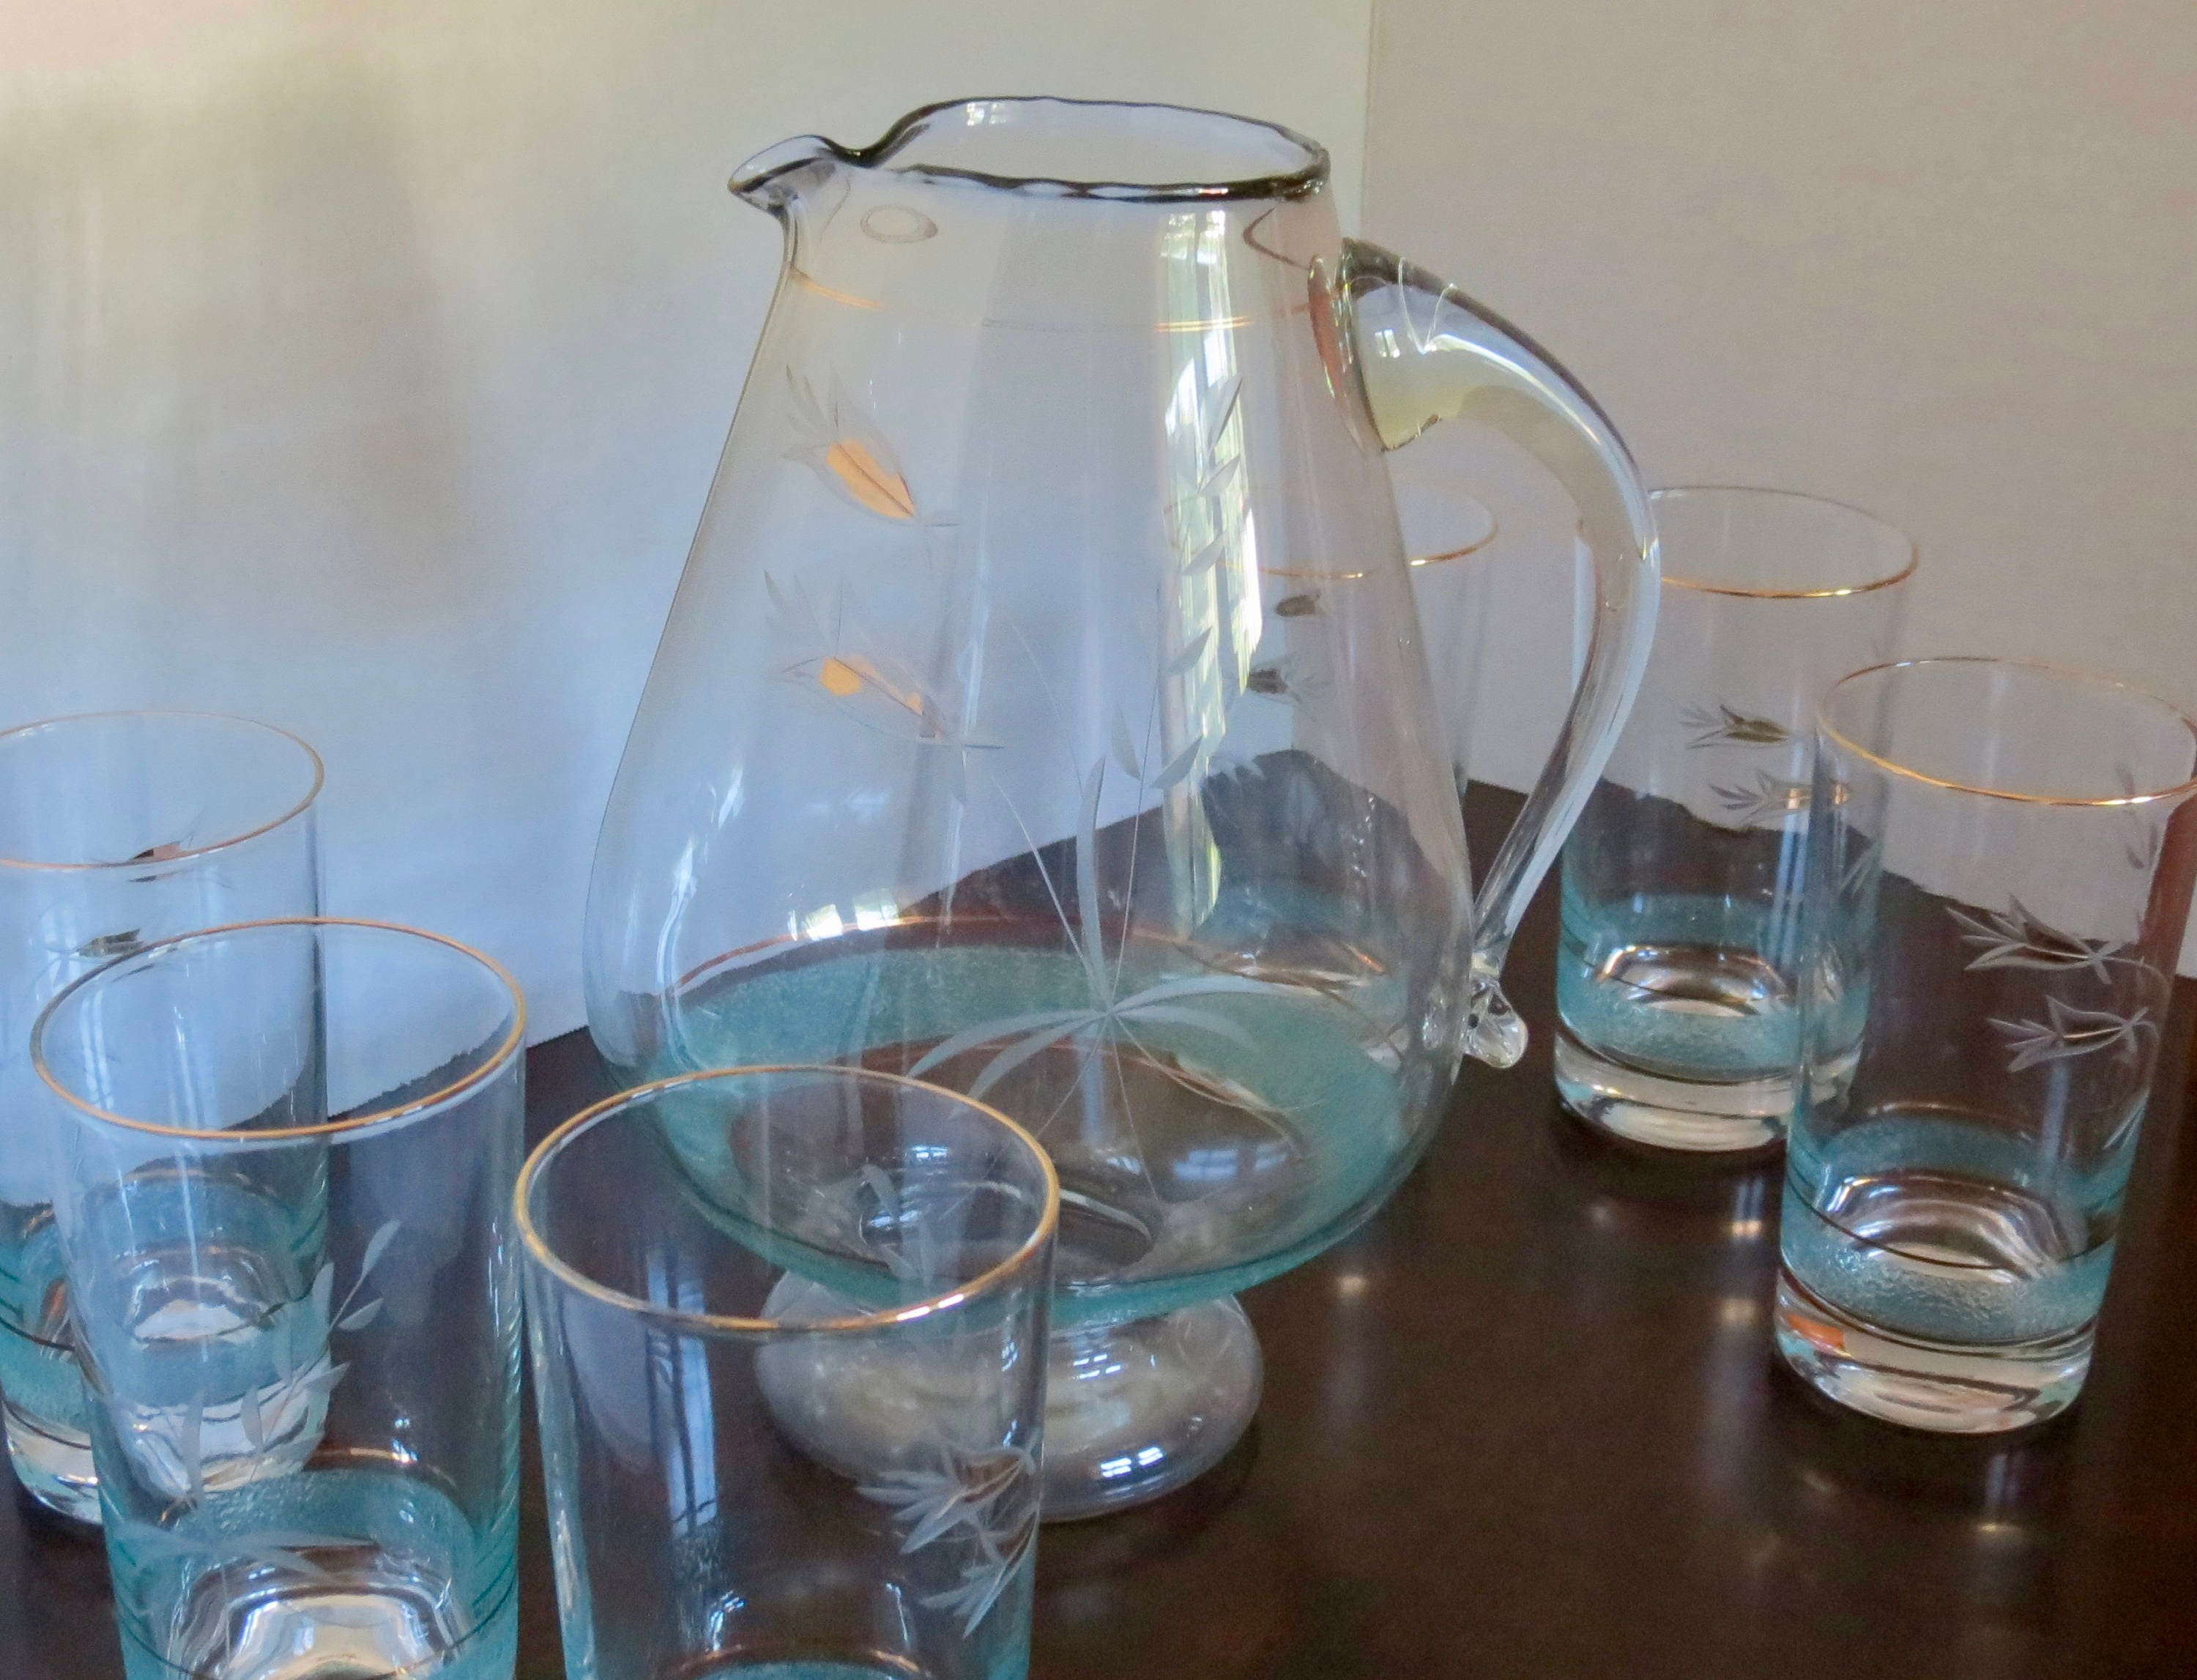 Image 9 of Vintage Pitcher Set - Mid Century Turquoise and Gold Graphics, Pitcher with Six